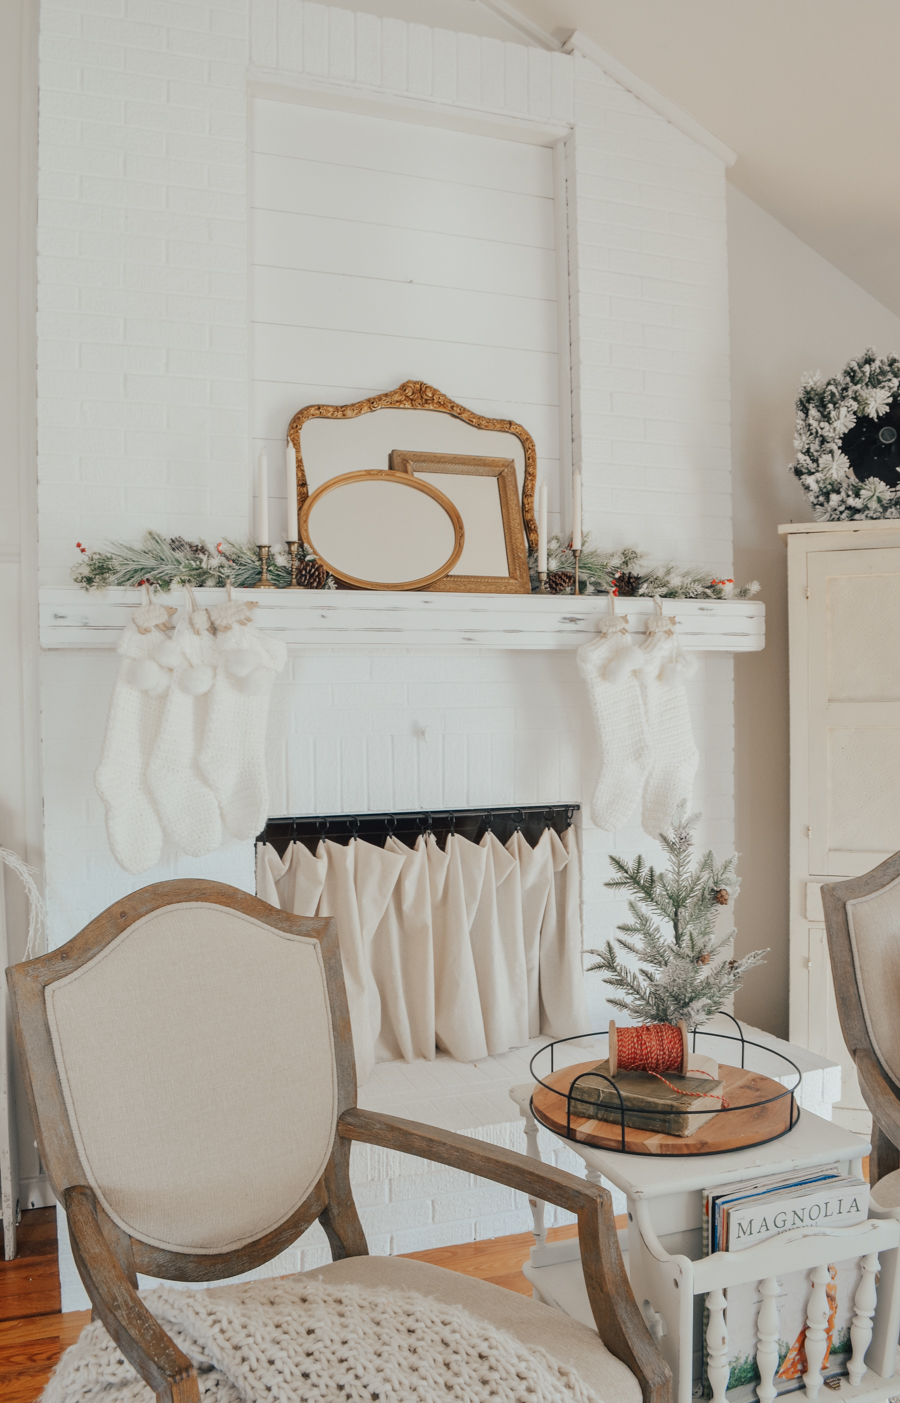 Simple Vintage Christmas Mantel. A simple mantel decorated for Christmas with antique mirror and candlesticks.